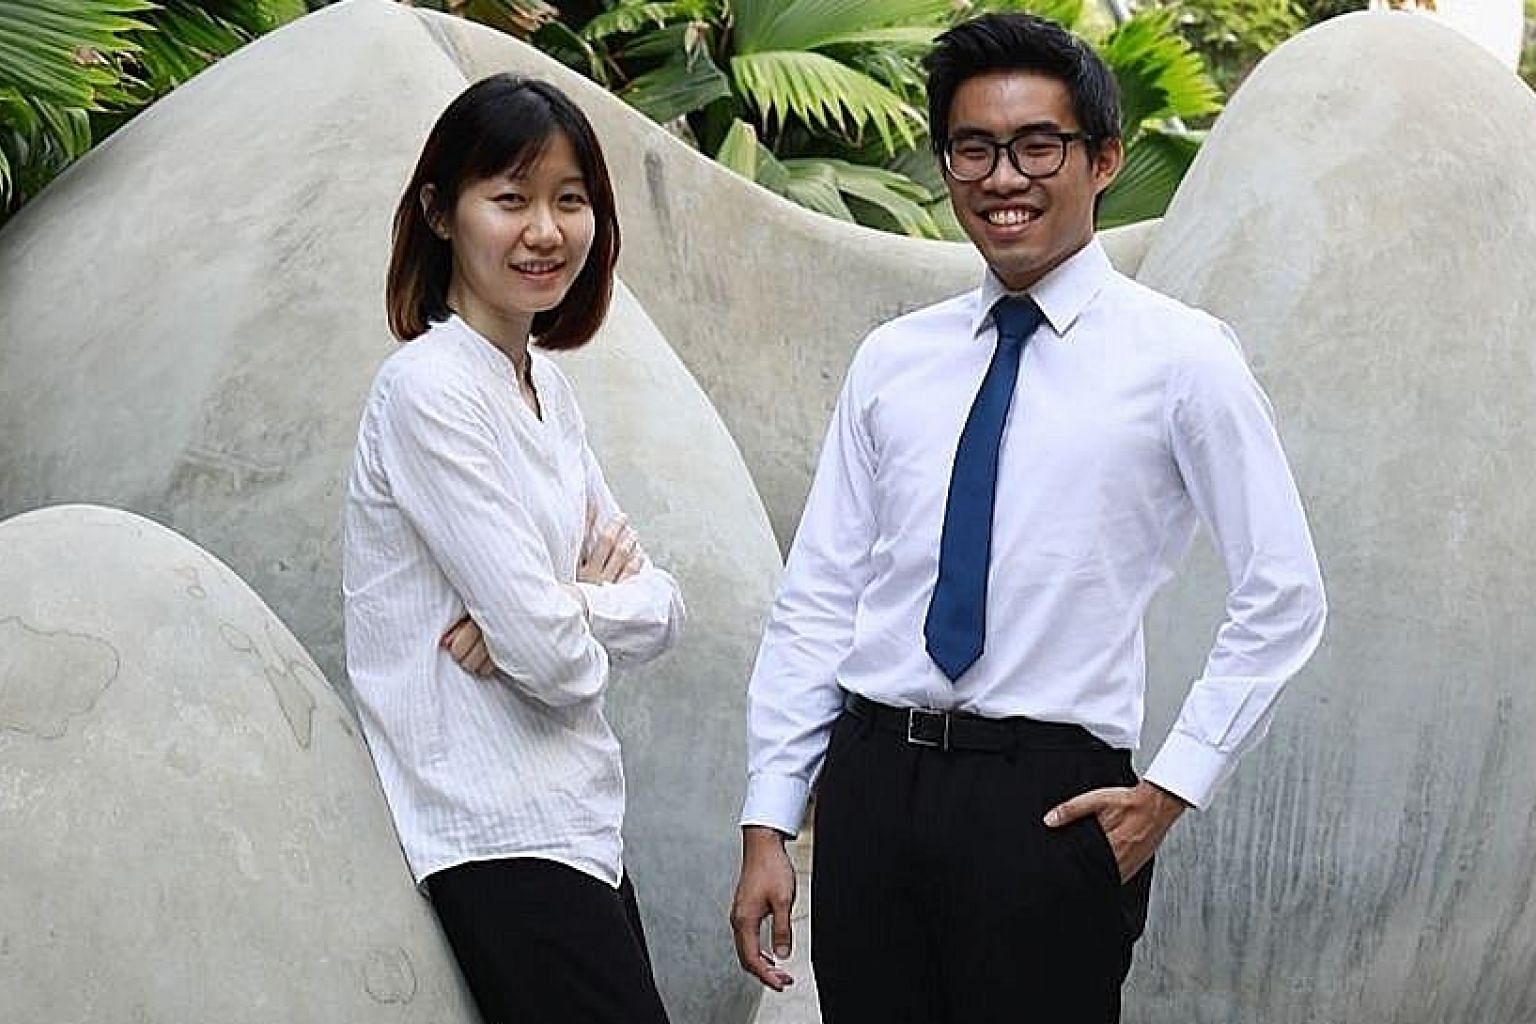 Mr Benjamin Chong received the BCA-Woha iBuildSG Undergraduate Scholarship yesterday, while Ms Ong Yan Xiang was one of four people given the iBuildSG Young Leaders' Advocate award.